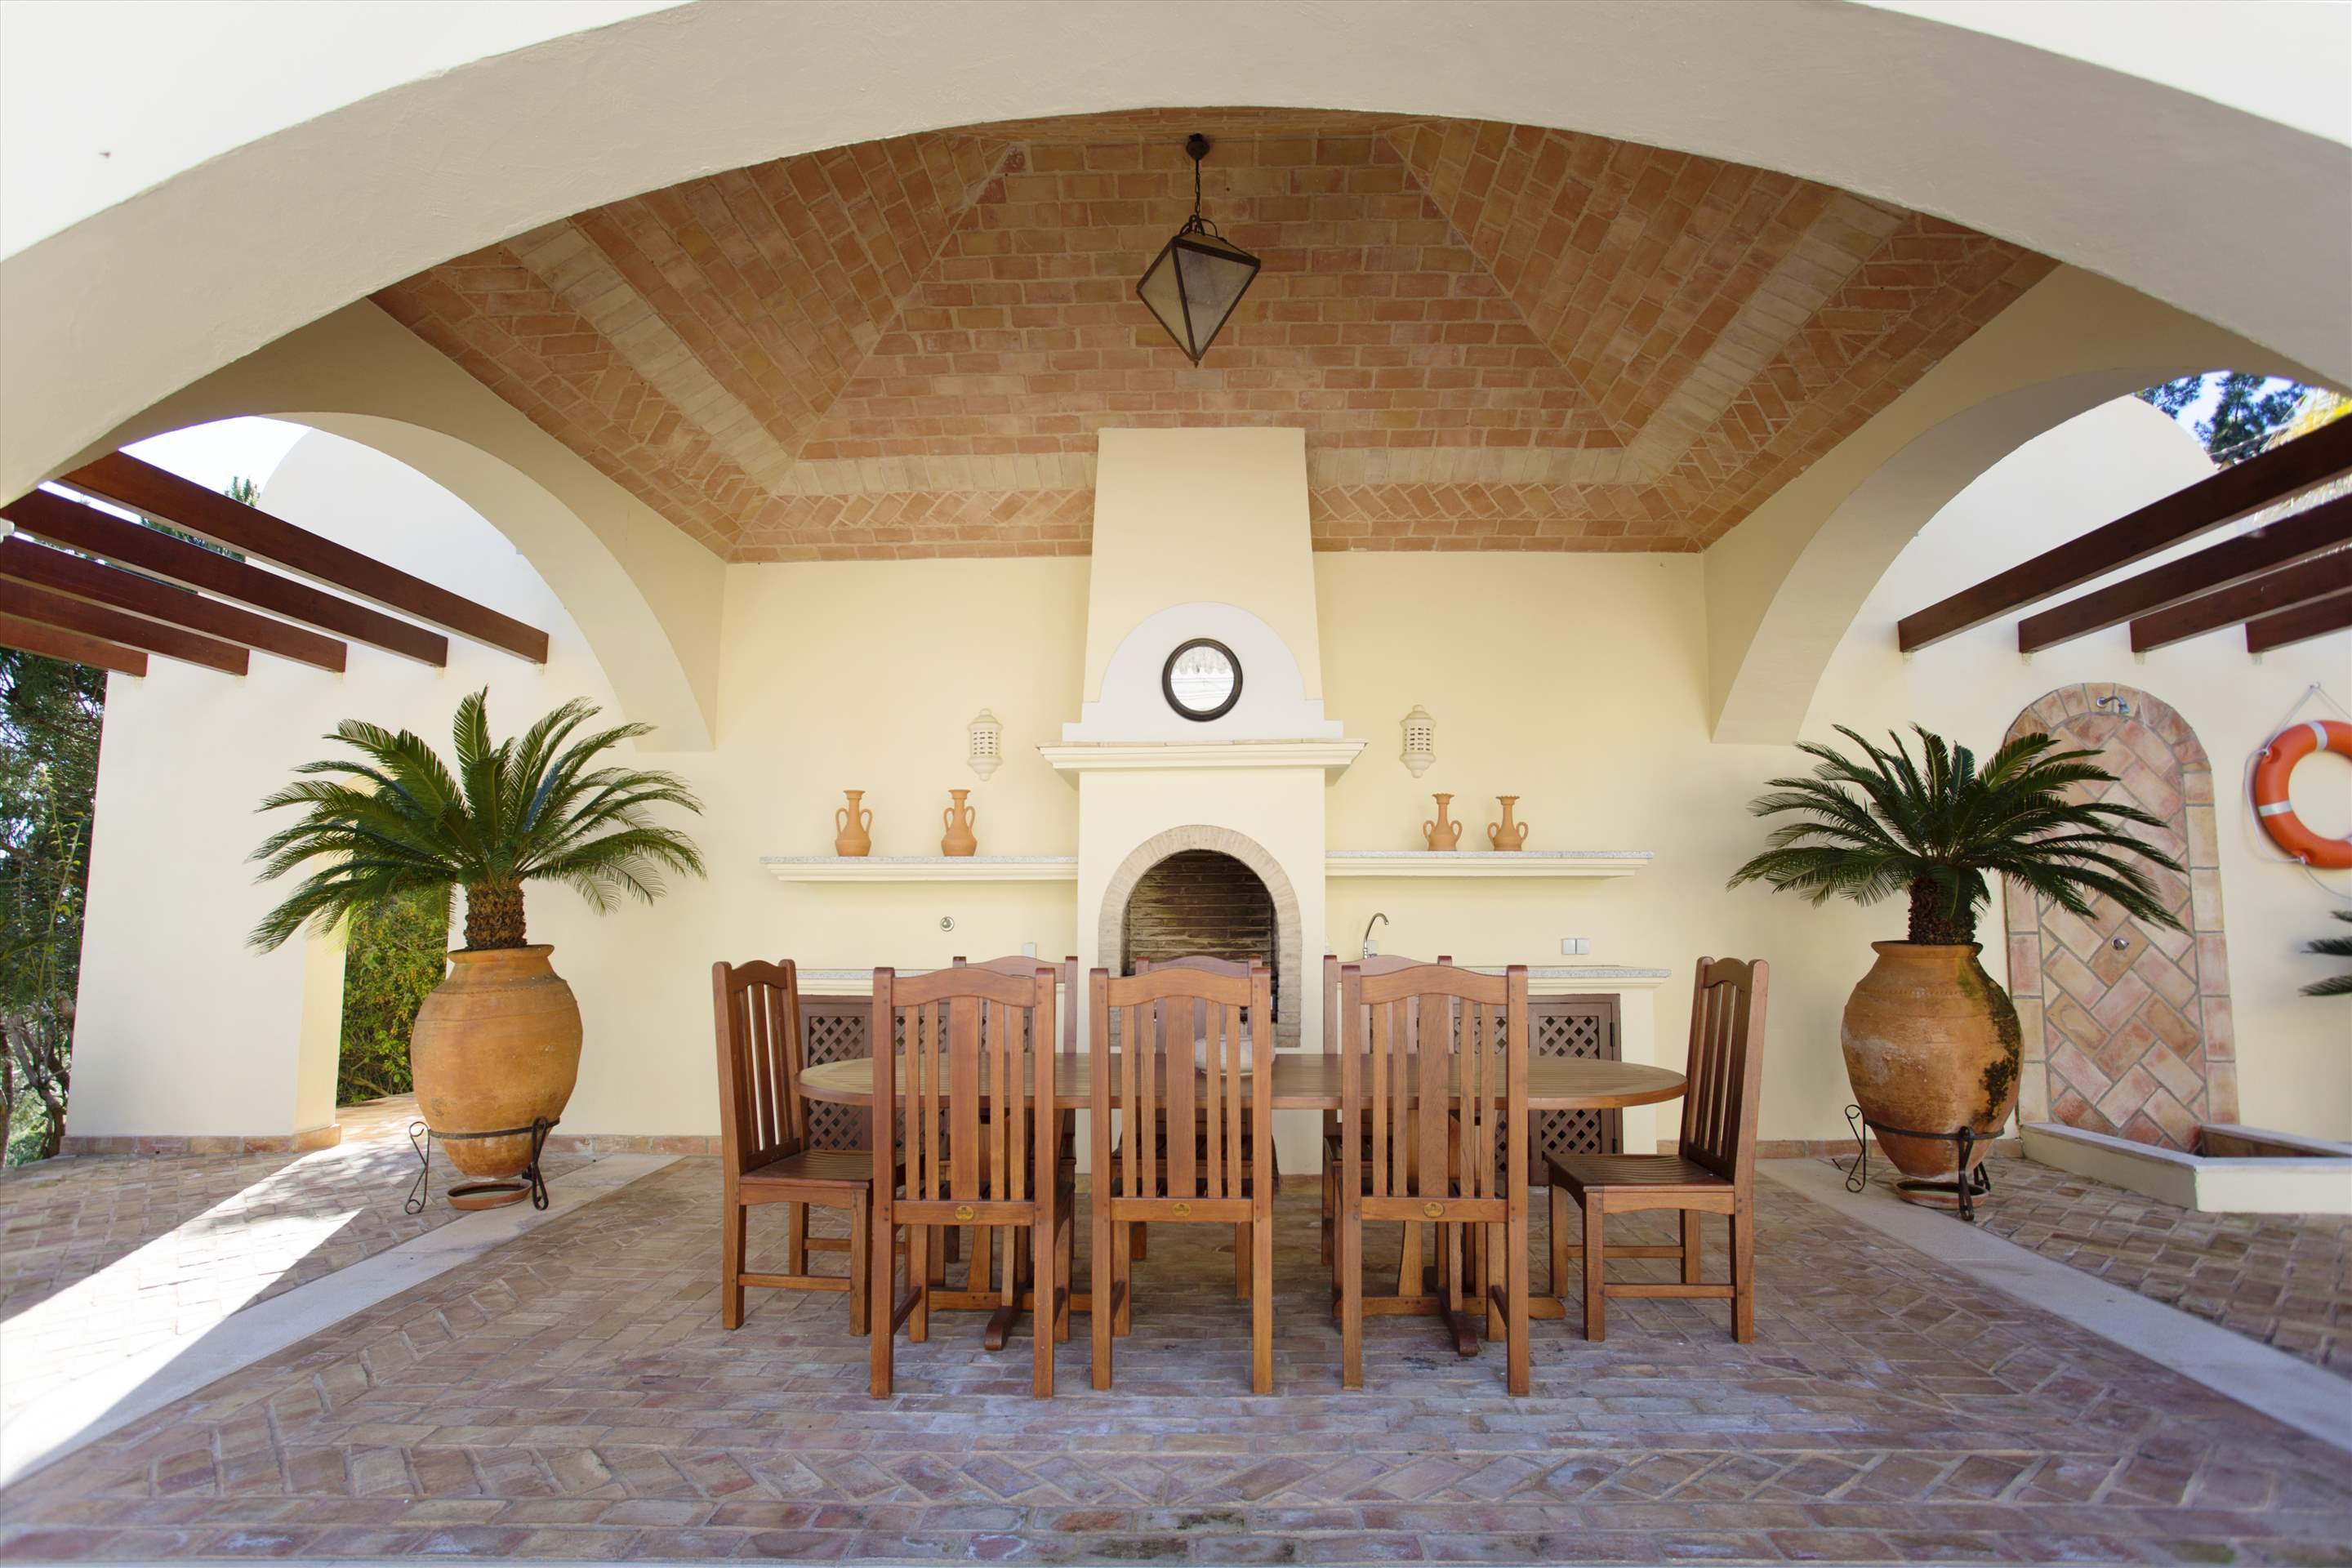 Villa Palmeiras Altas, 5 bedroom villa in Quinta do Lago, Algarve Photo #3